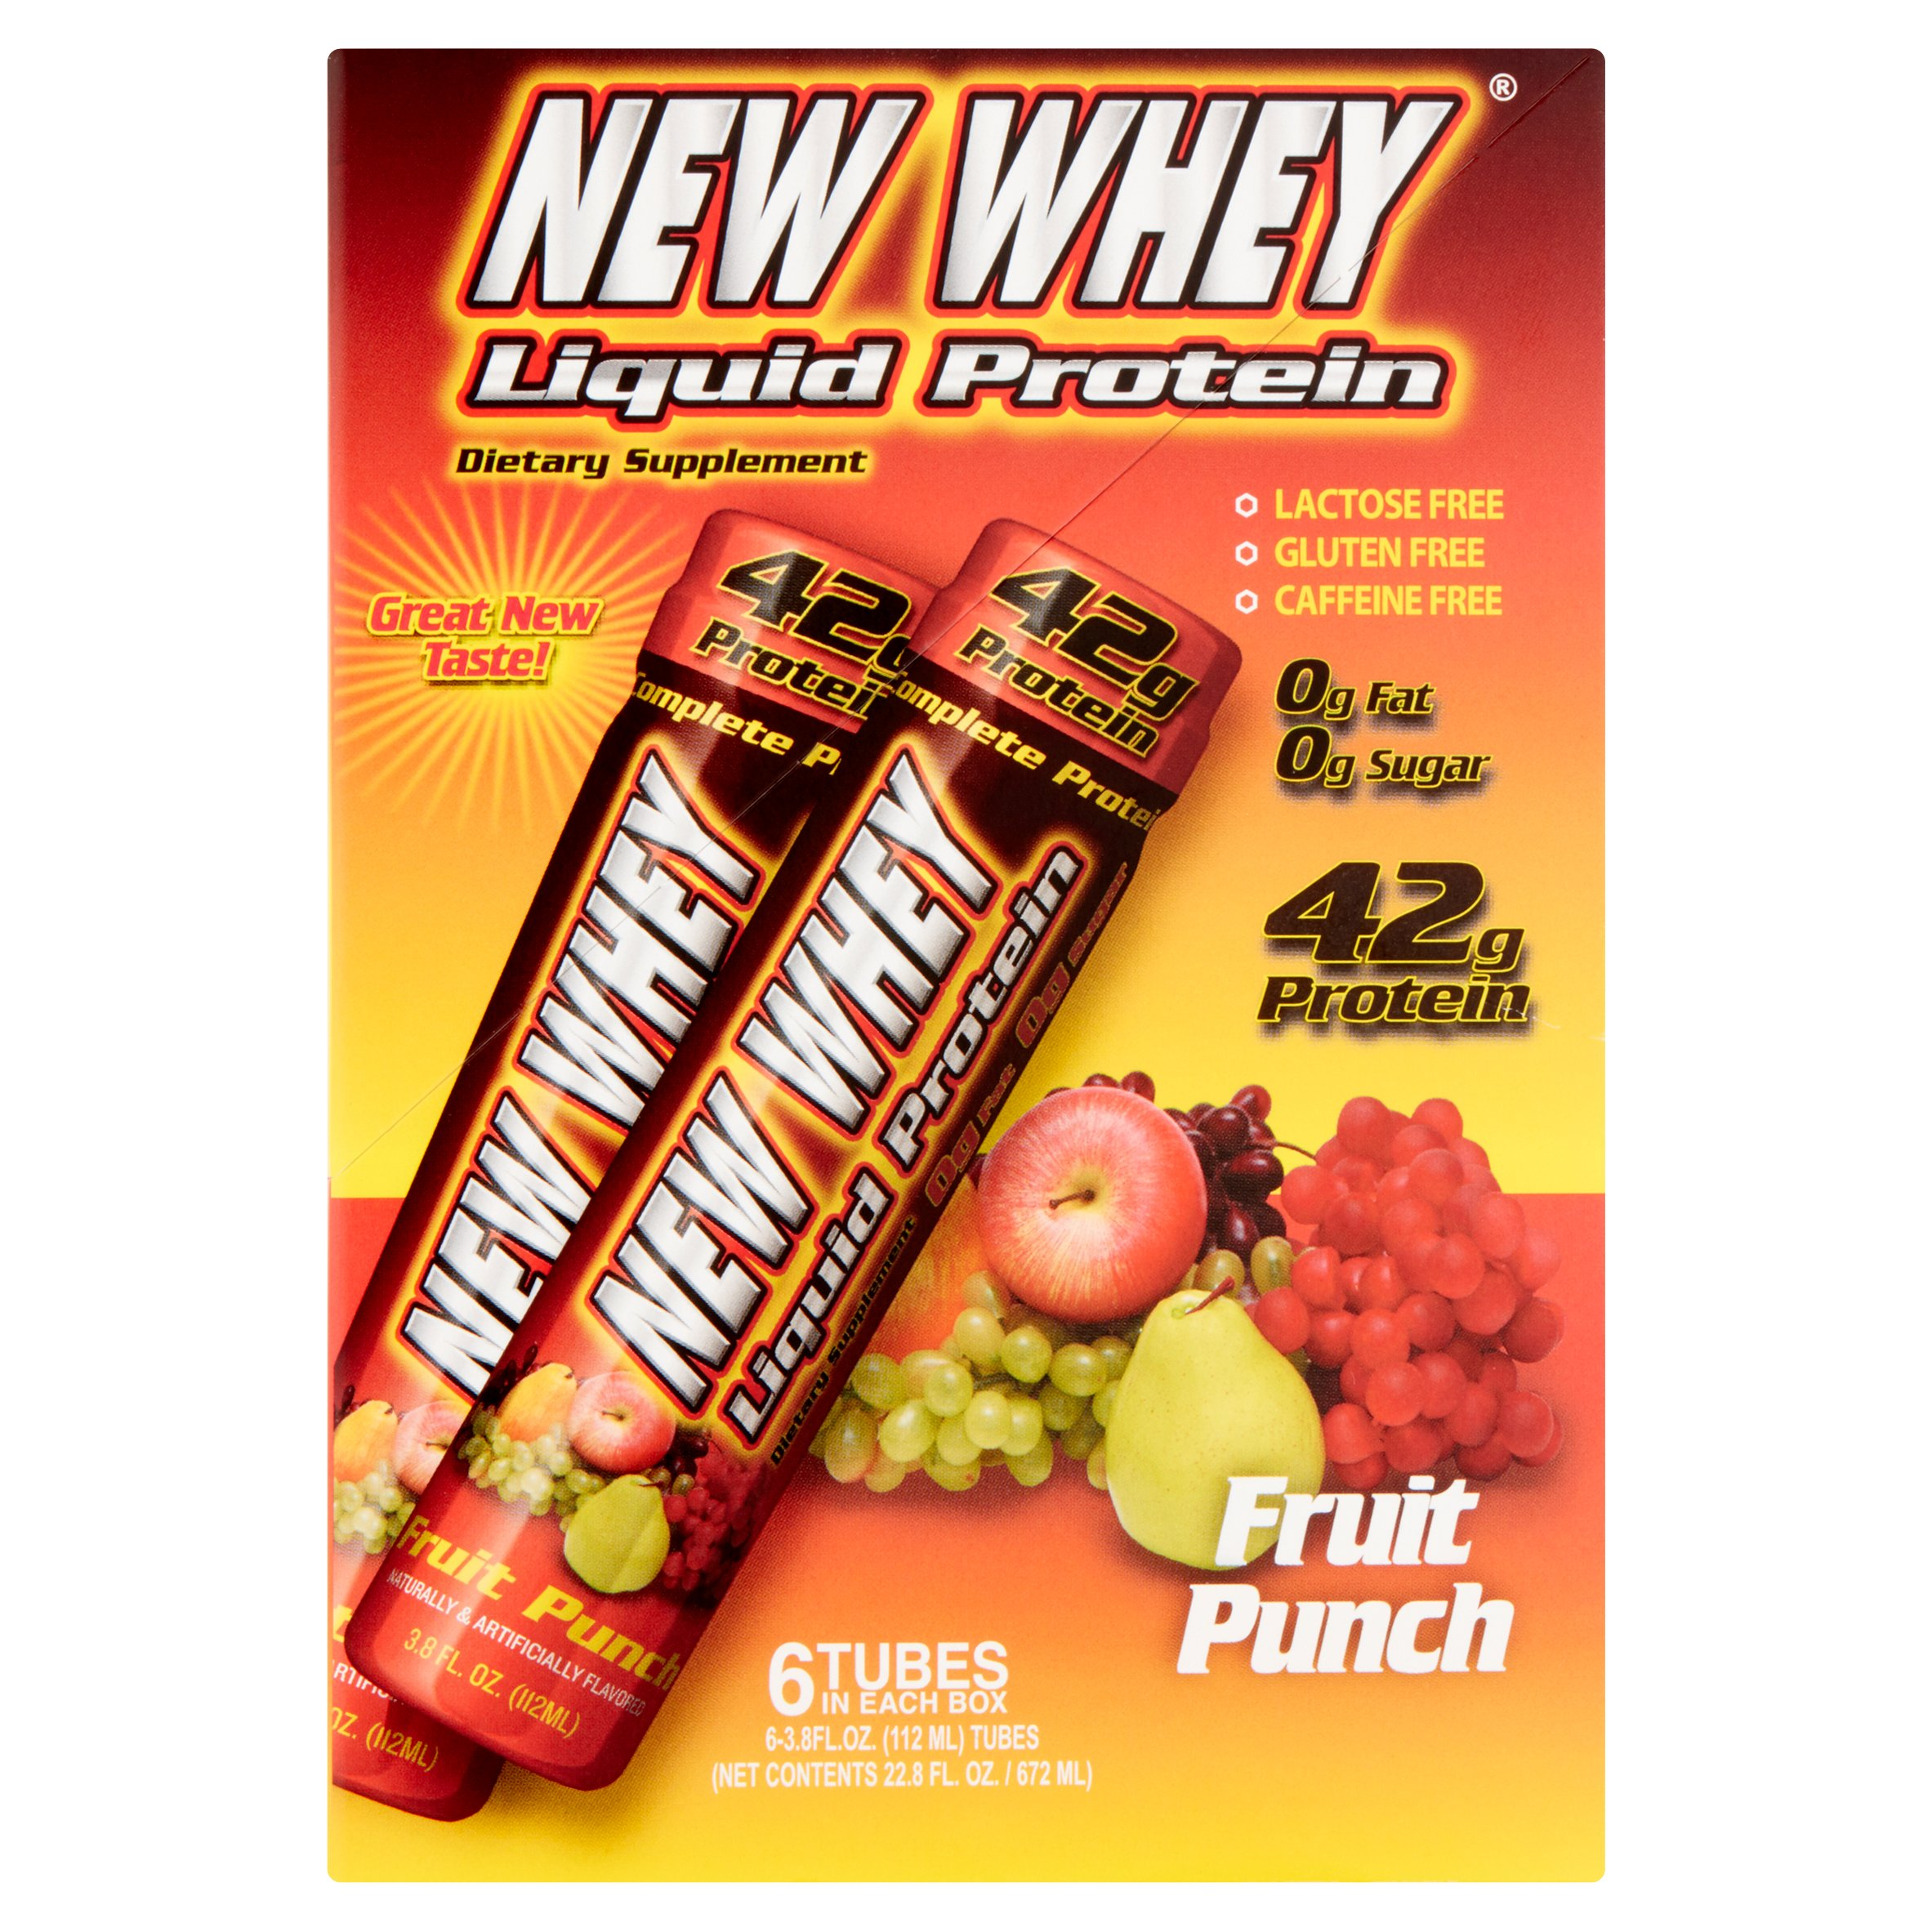 New Whey Protein Drink, 42 Grams of Protein, Fruit Punch, 3.8 Oz, 6 Ct